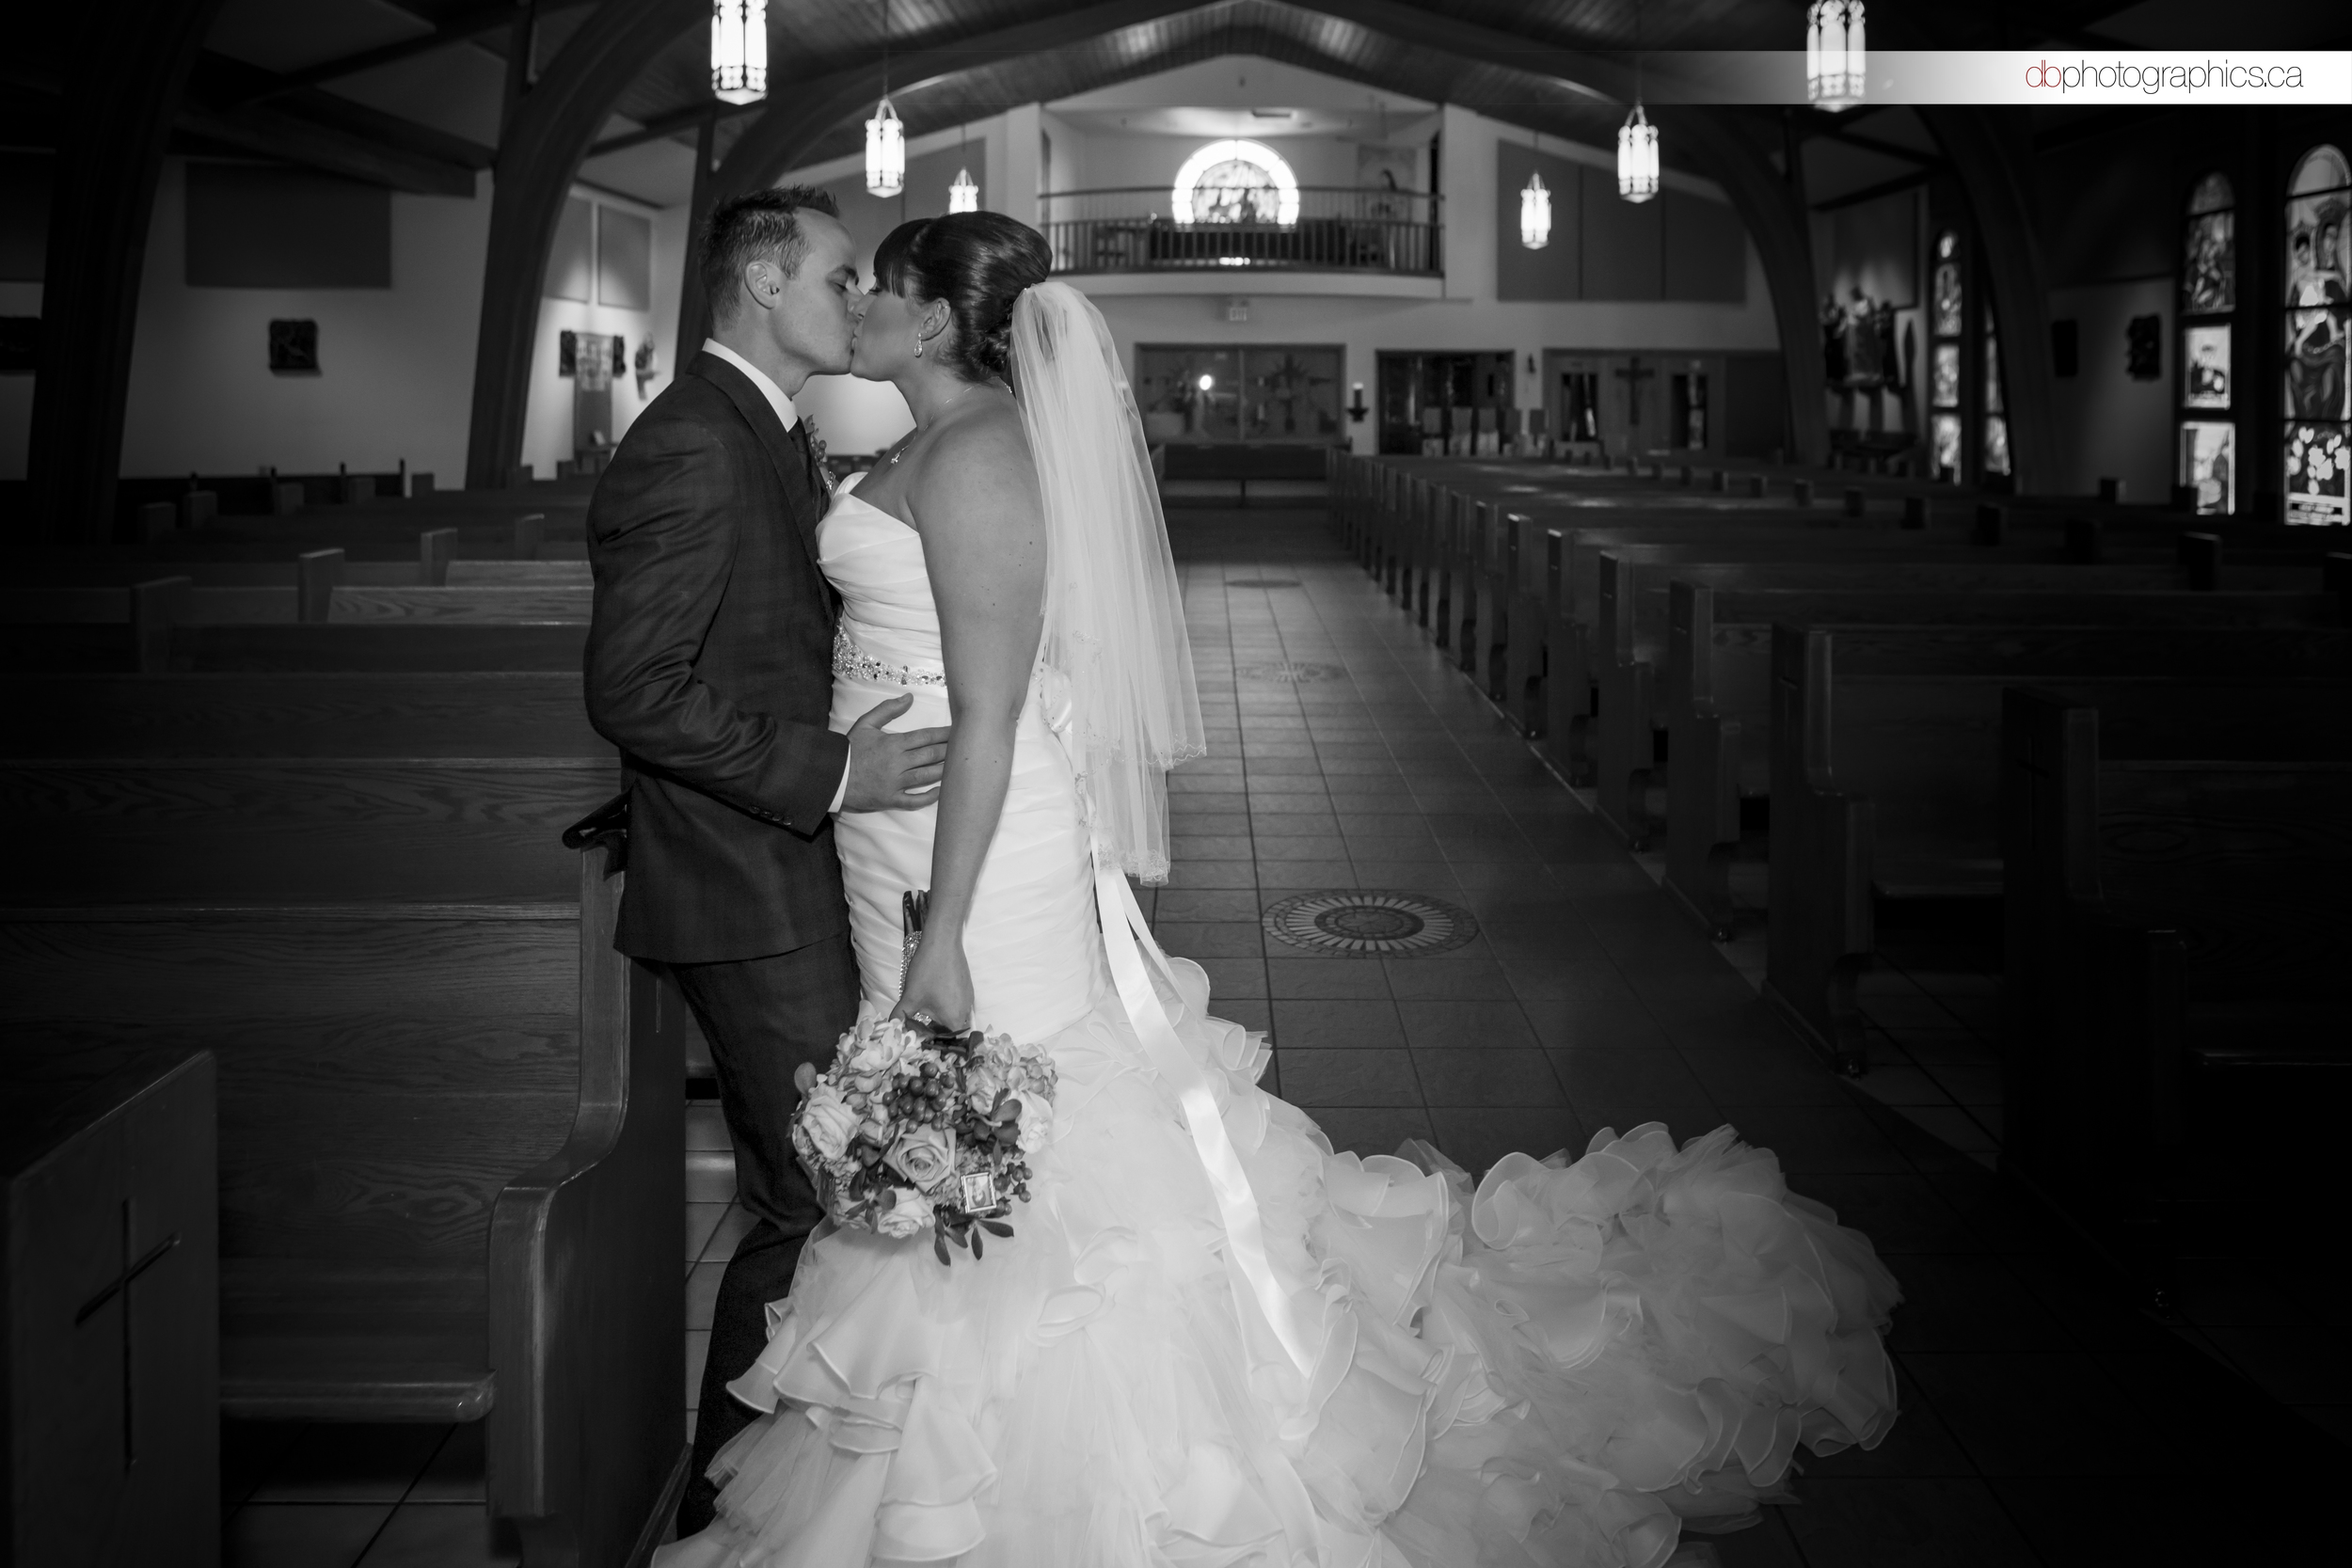 rob-alicia-wedding-359-lr.jpg